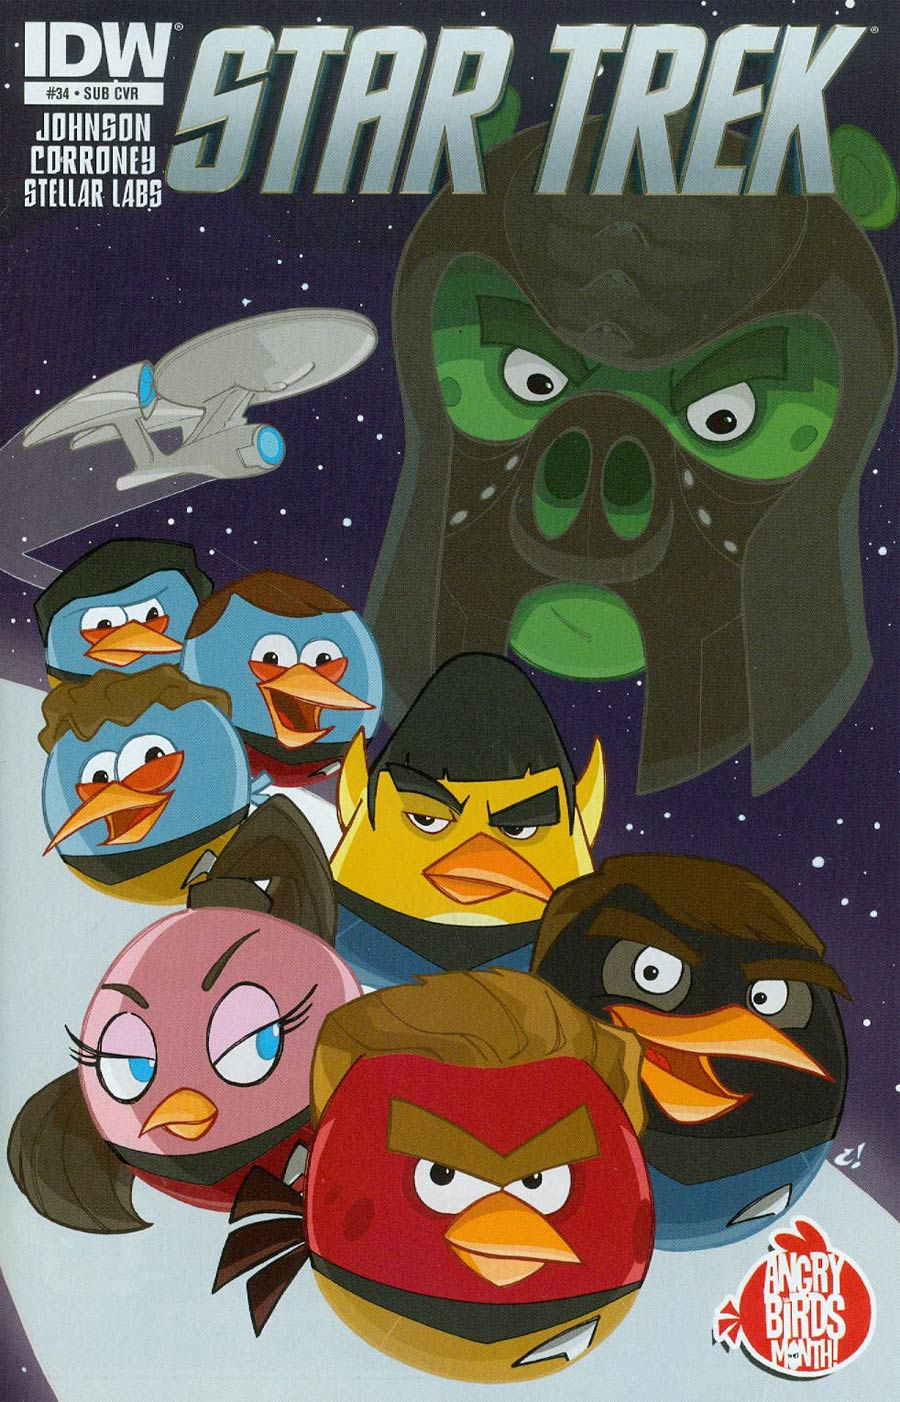 Star Trek (IDW) #34 Cover B Variant Craig Rousseau Angry Birds Subscription Cover